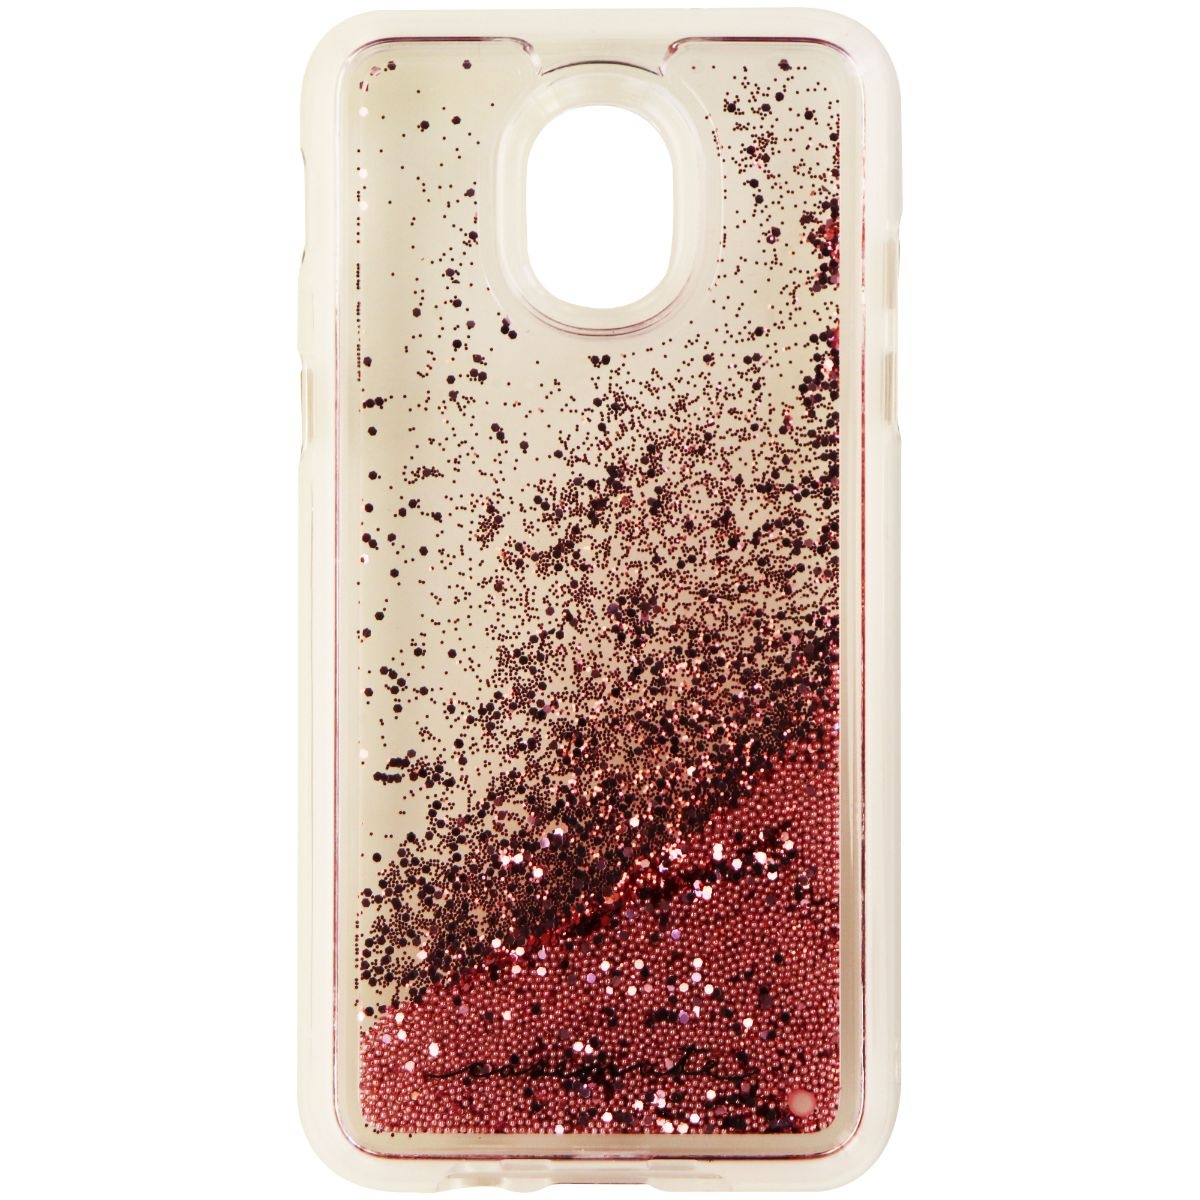 Case-Mate Waterfall Liquid Glitter Case for Galaxy J3 and J3 V (3rd Gen) - Pink